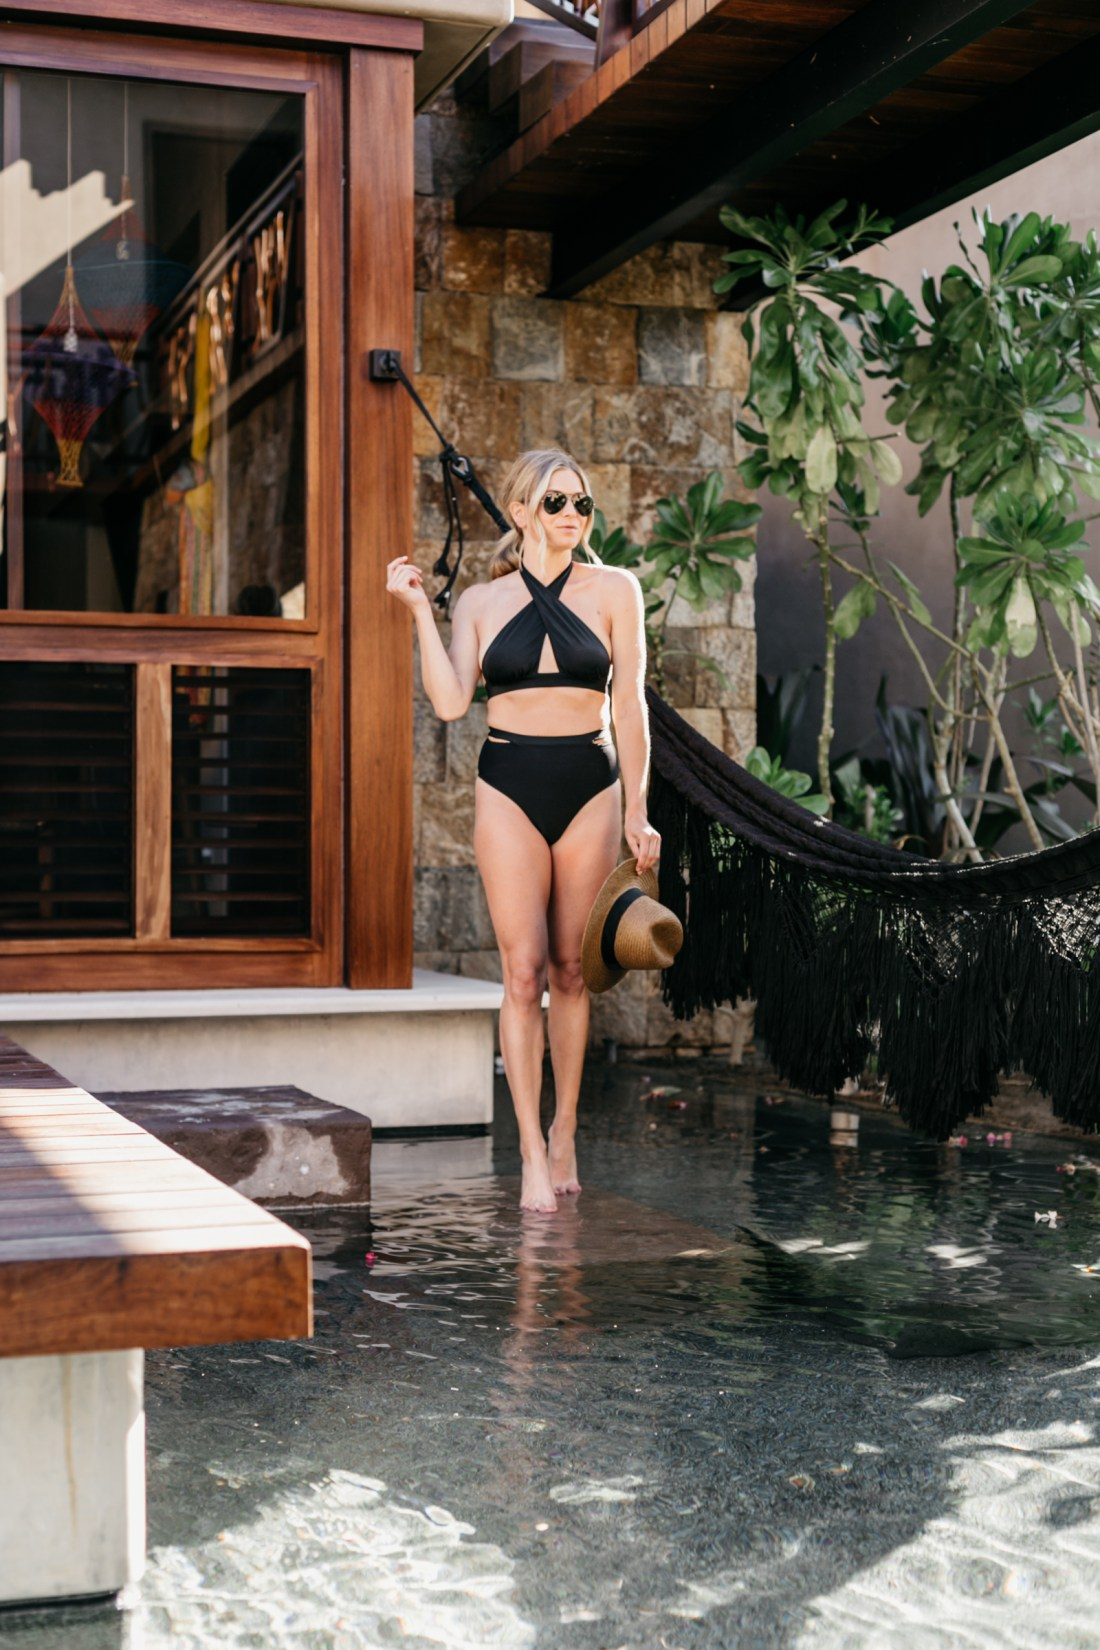 Broke is featuring a Black Criss Cross Swim Top // Black High Waist Swim Bottoms // Beach Hat // Aviator Sunglasses